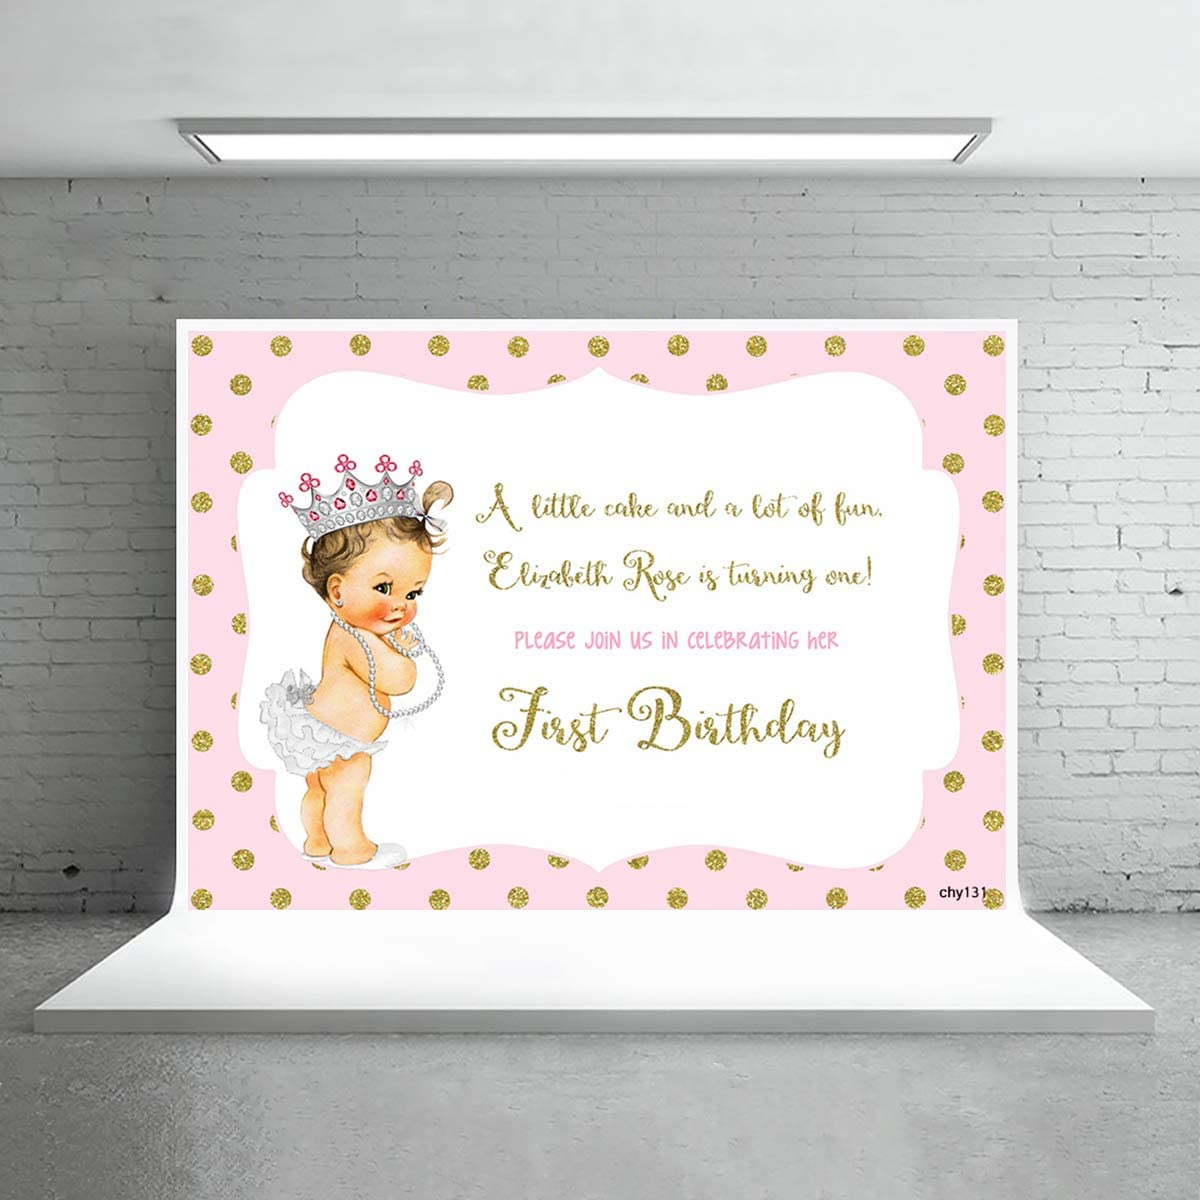 6x6ft,chy155 TCReal Cartoon Background Banner Photography Studio Baby Birthday Family Party Holiday Celebration Photography Backdrop Children Home Decoration